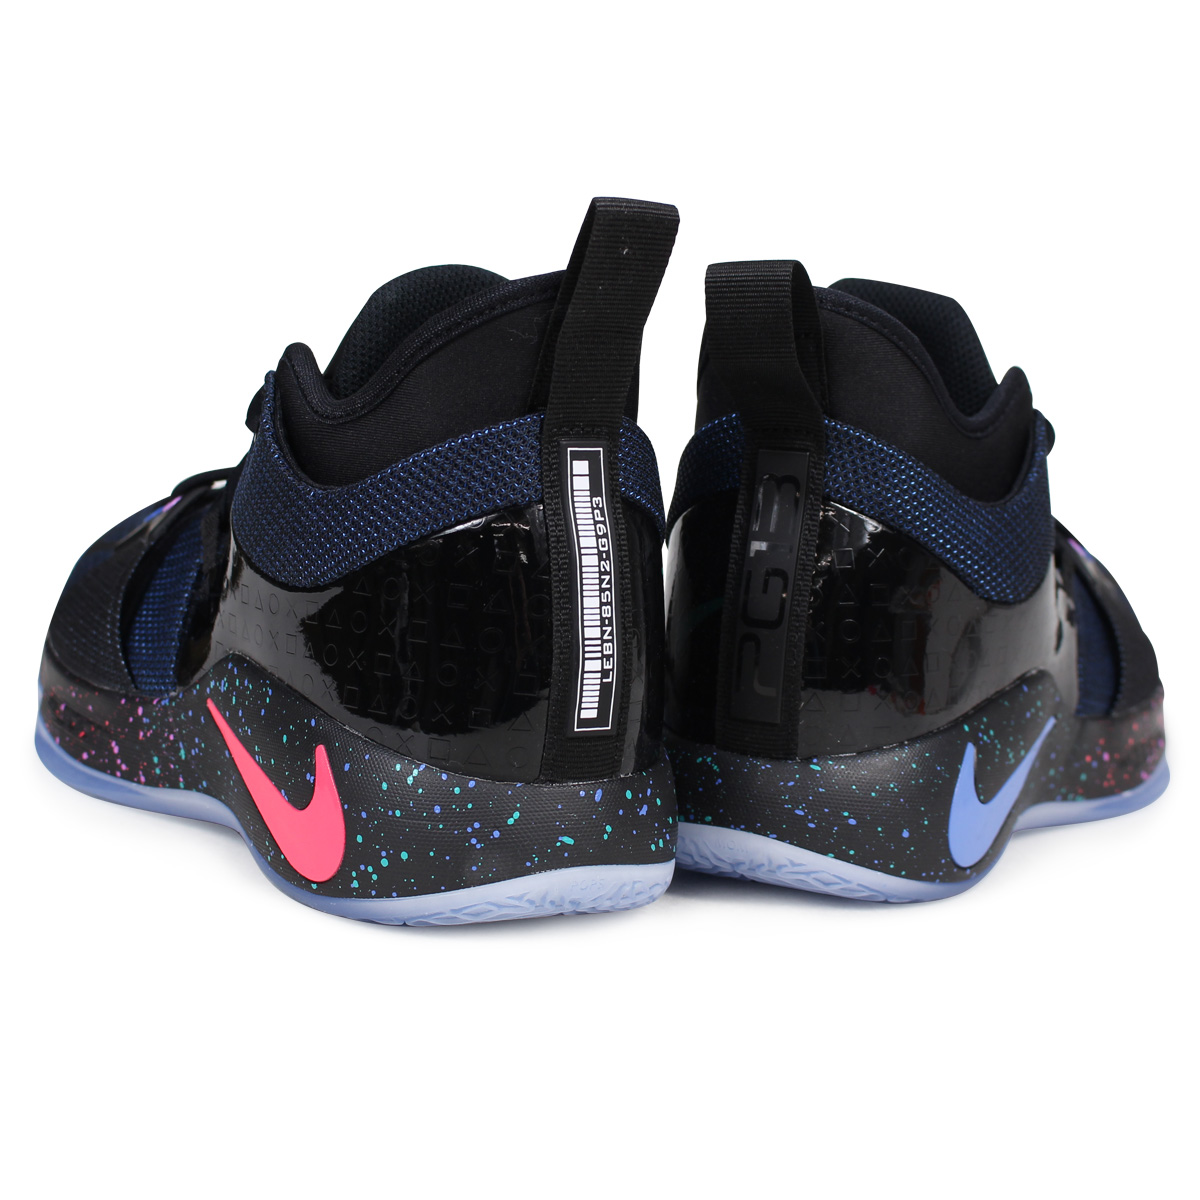 e1c3165f290 NIKE PG 2 EP PLAYSTATION Nike PG2 sneakers men black AT7816-002  183